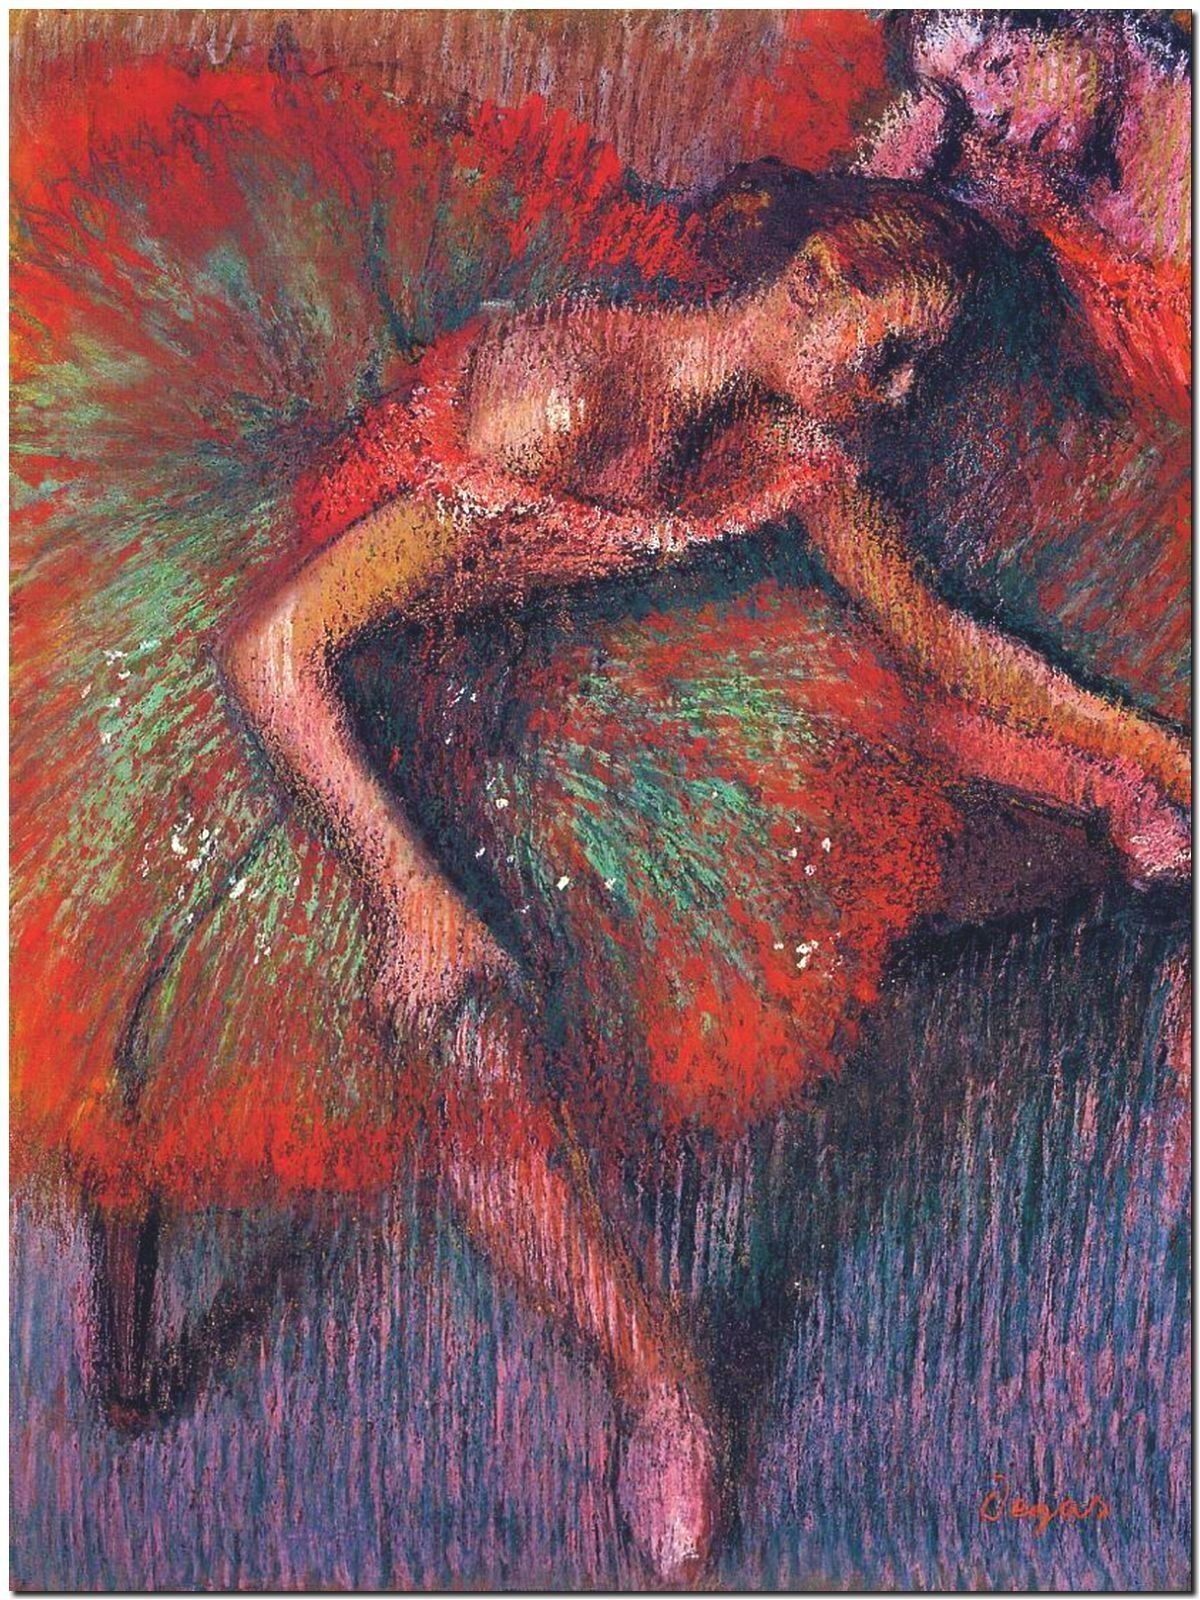 178706 BALLET DANCER BY EDGAR DEGAS DECOR WALL PRINT POSTER CA